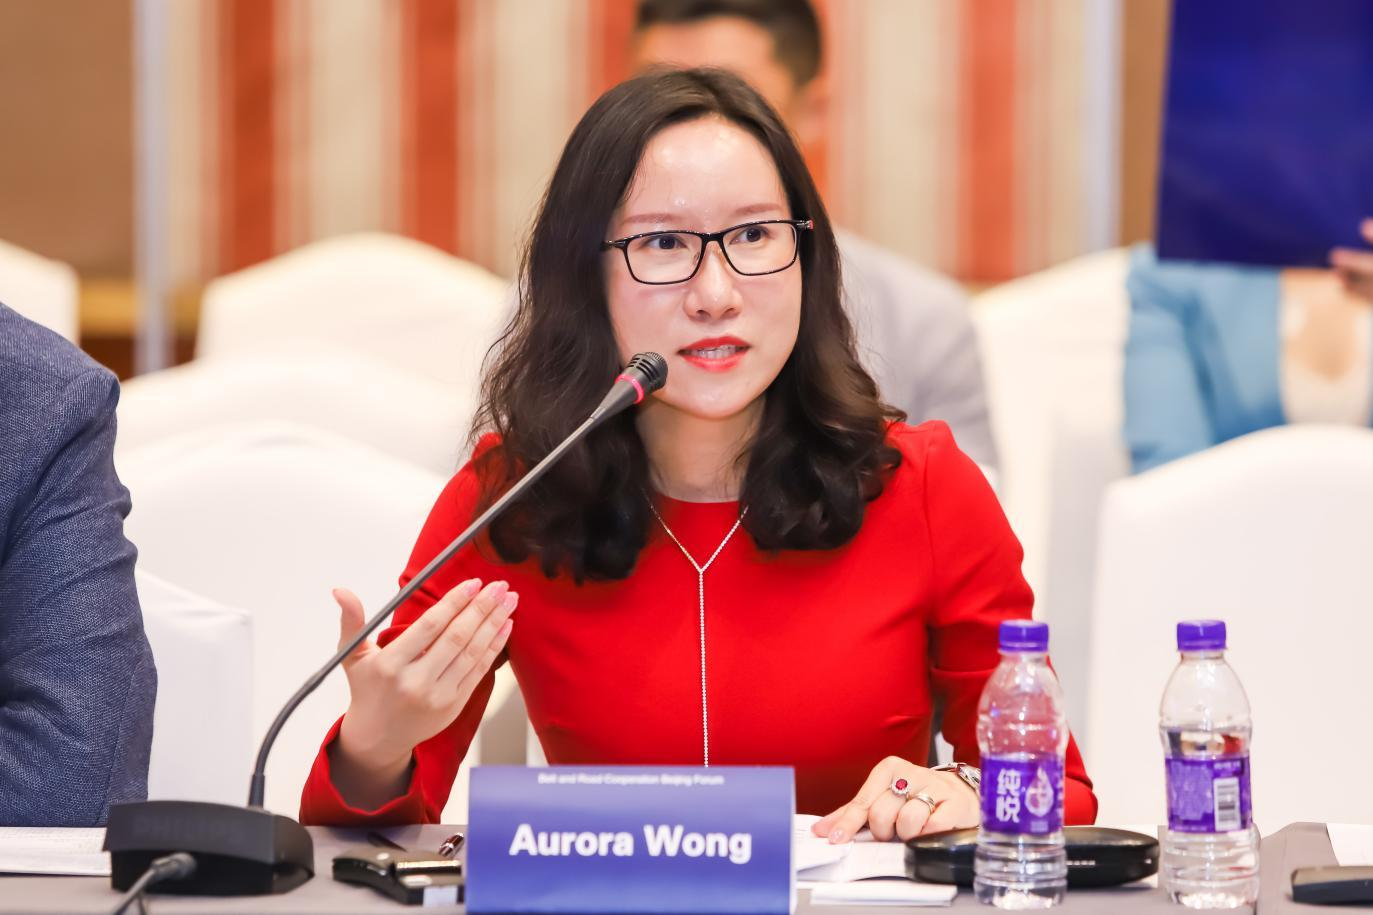 Aurora Wong Advanced Technologies RoundTable